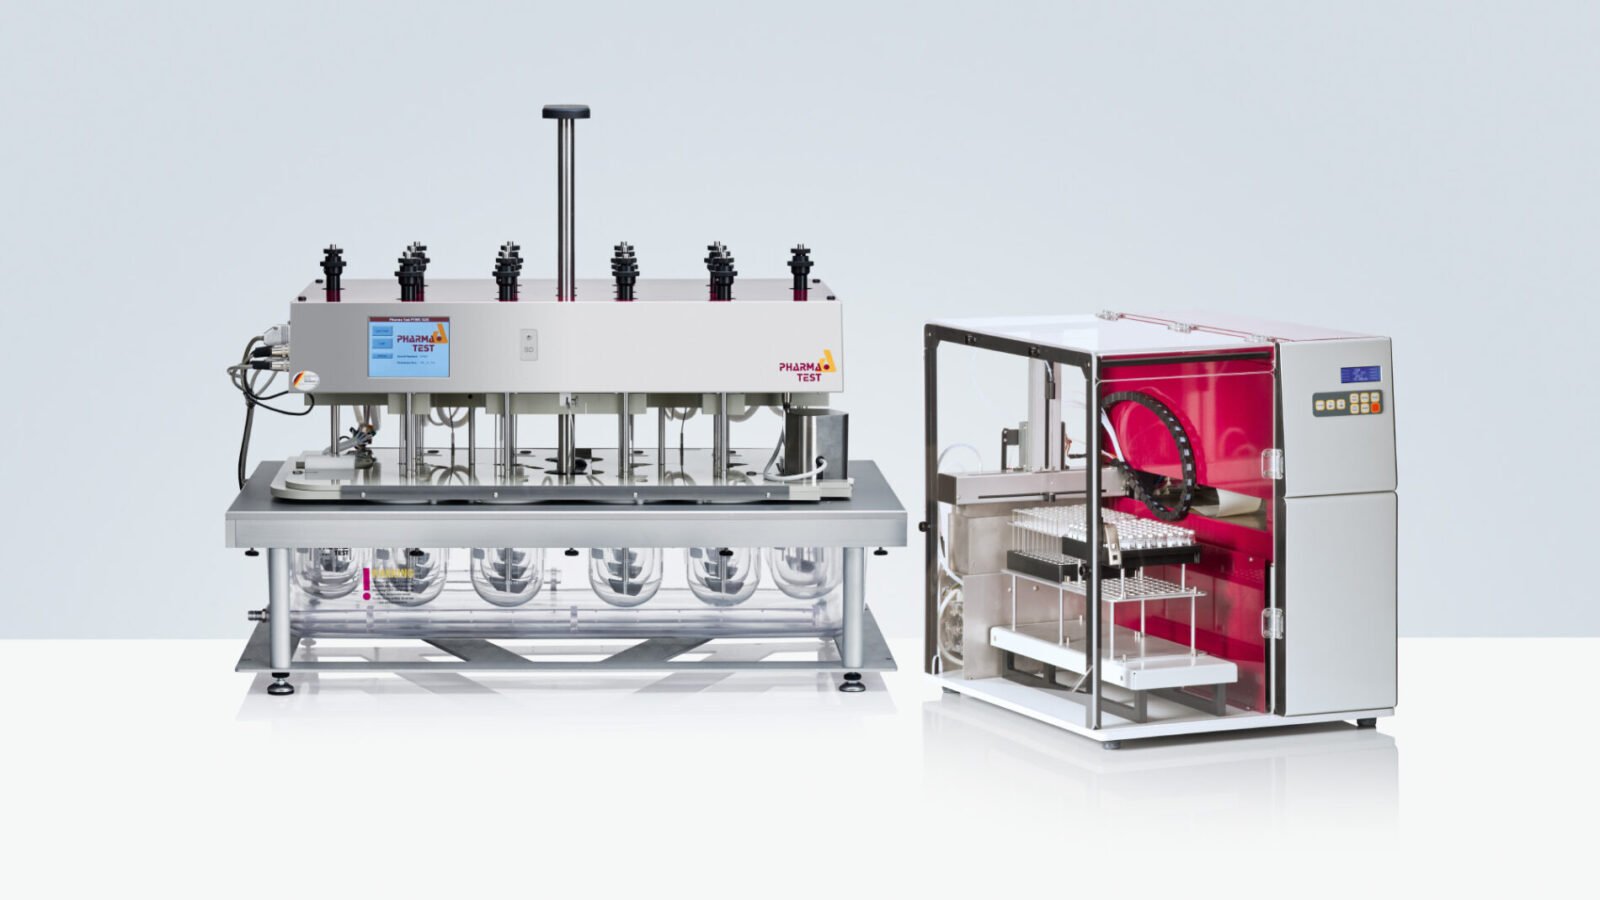 The DSR-M sampling robot combined with the PTWS 1420 tablet dissolution testing instrument is a 14+2 position semi-automated dissolution testing system designed for comparative studies such as Biowaivers